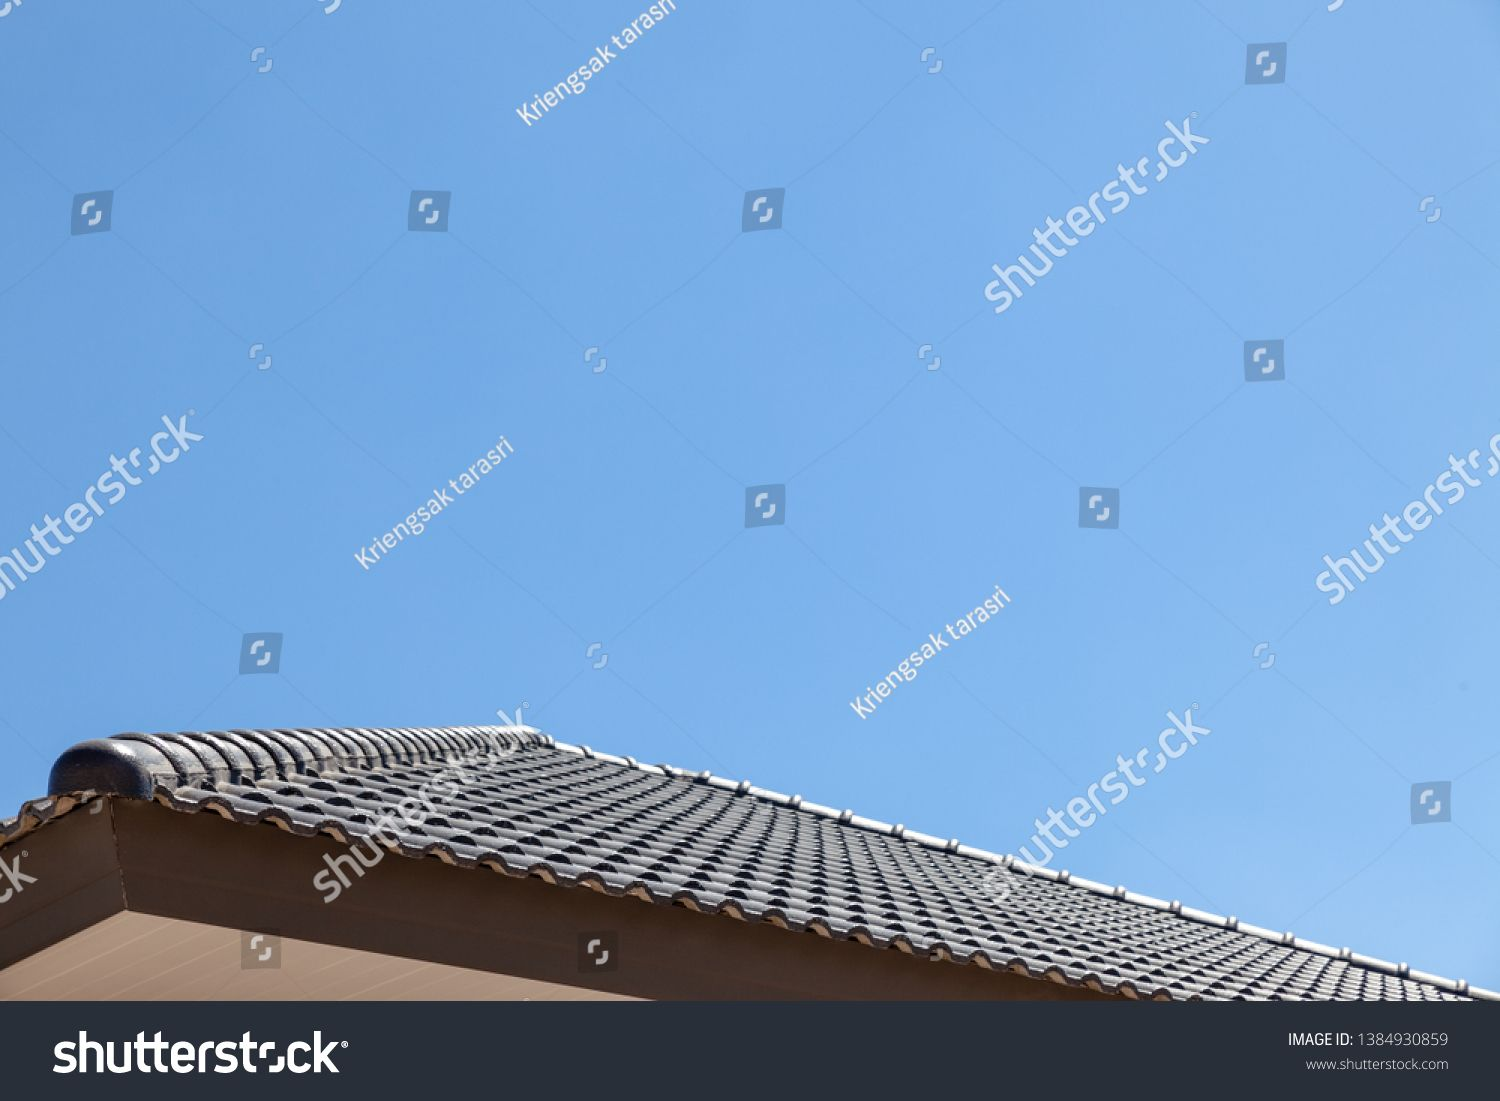 Close up of clay roof tiles Construction equipment house new black roof tiles